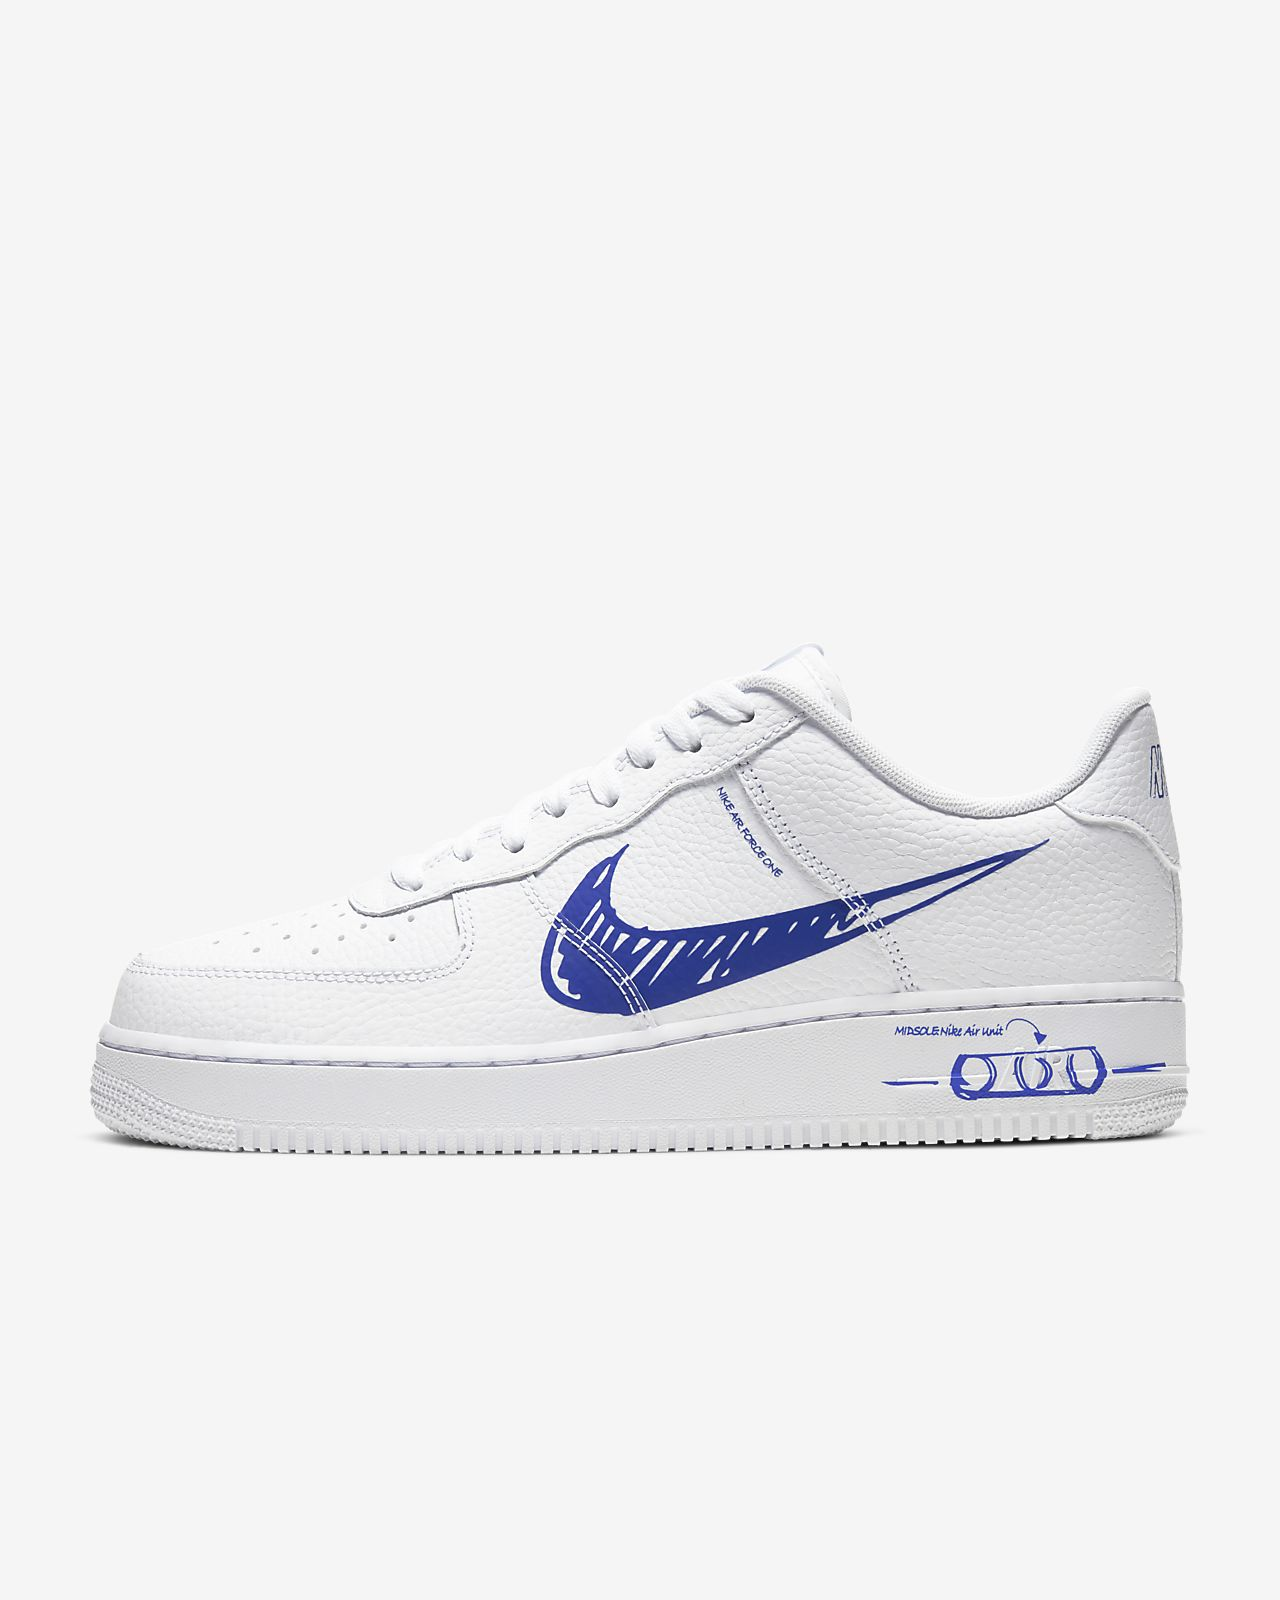 Nike Air Force 1 LV8 Utility Men's Shoe. Nike LU